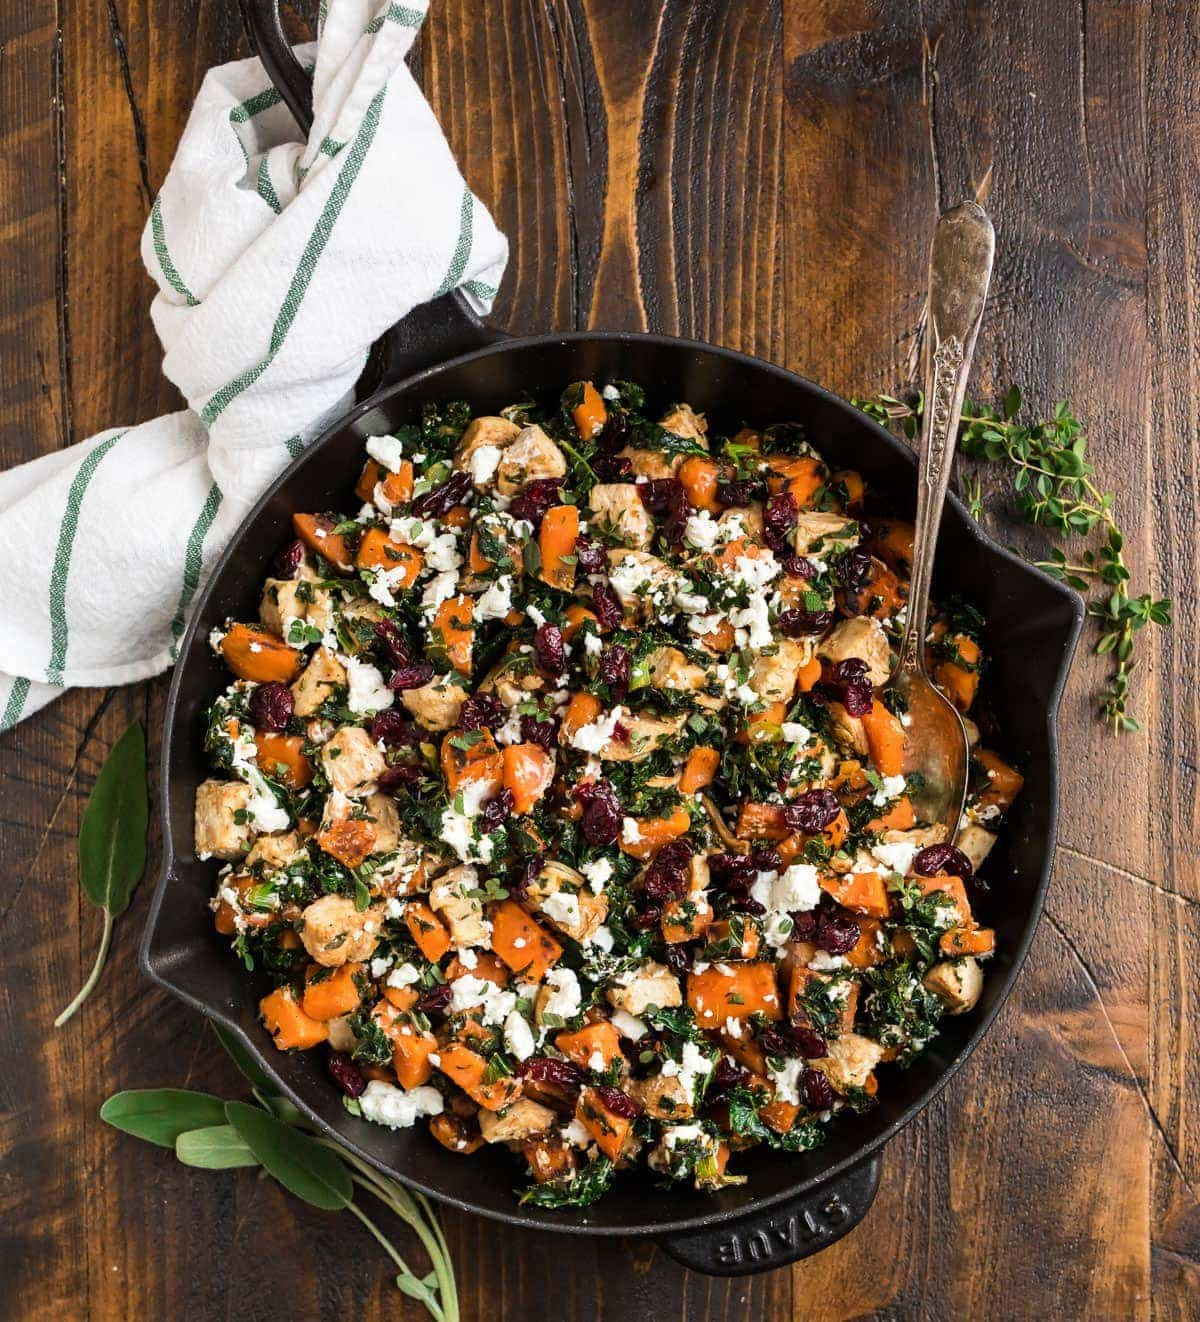 Easy Healthy Chicken Dinner with Sweet Potatoes Kale and Cranberries